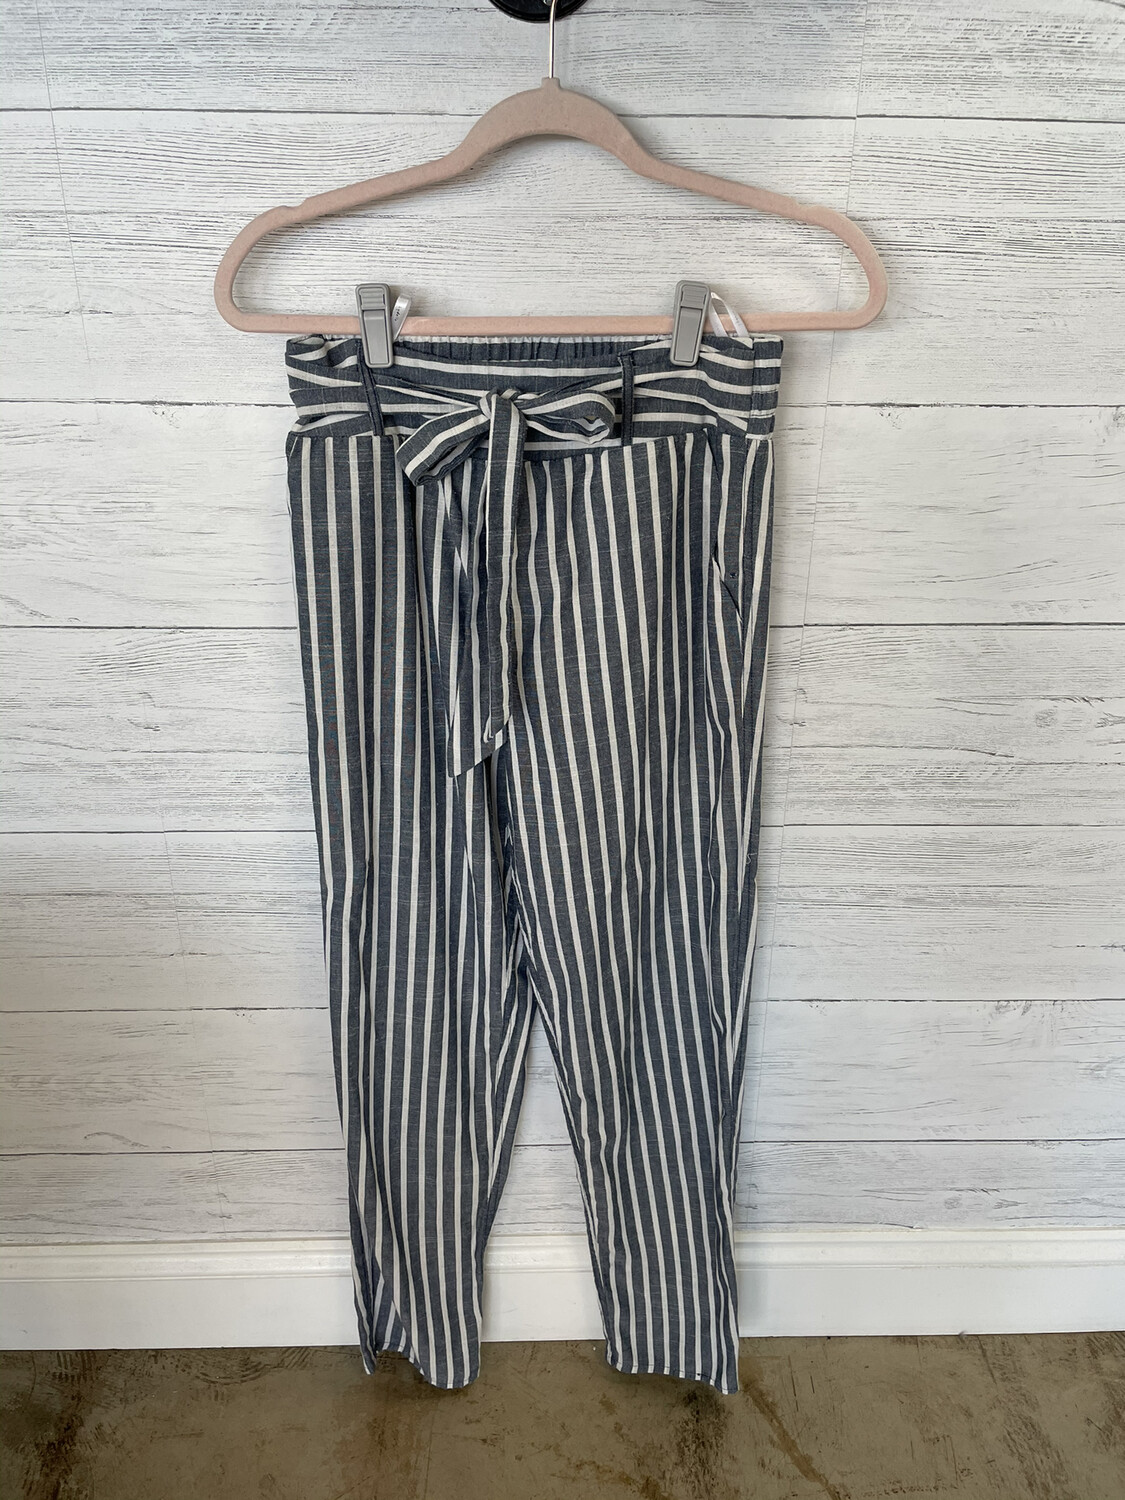 Lydelle Blue & White Striped Belted Pants - S